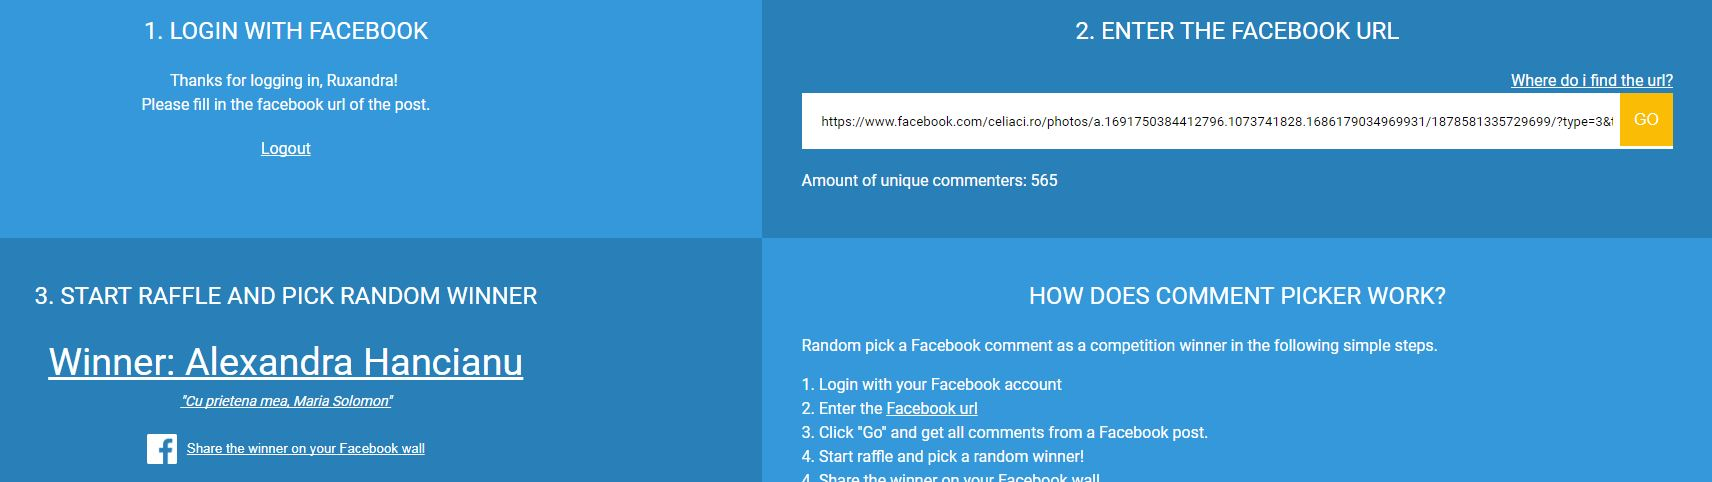 002520-Random Comment Picker for Facebook comments